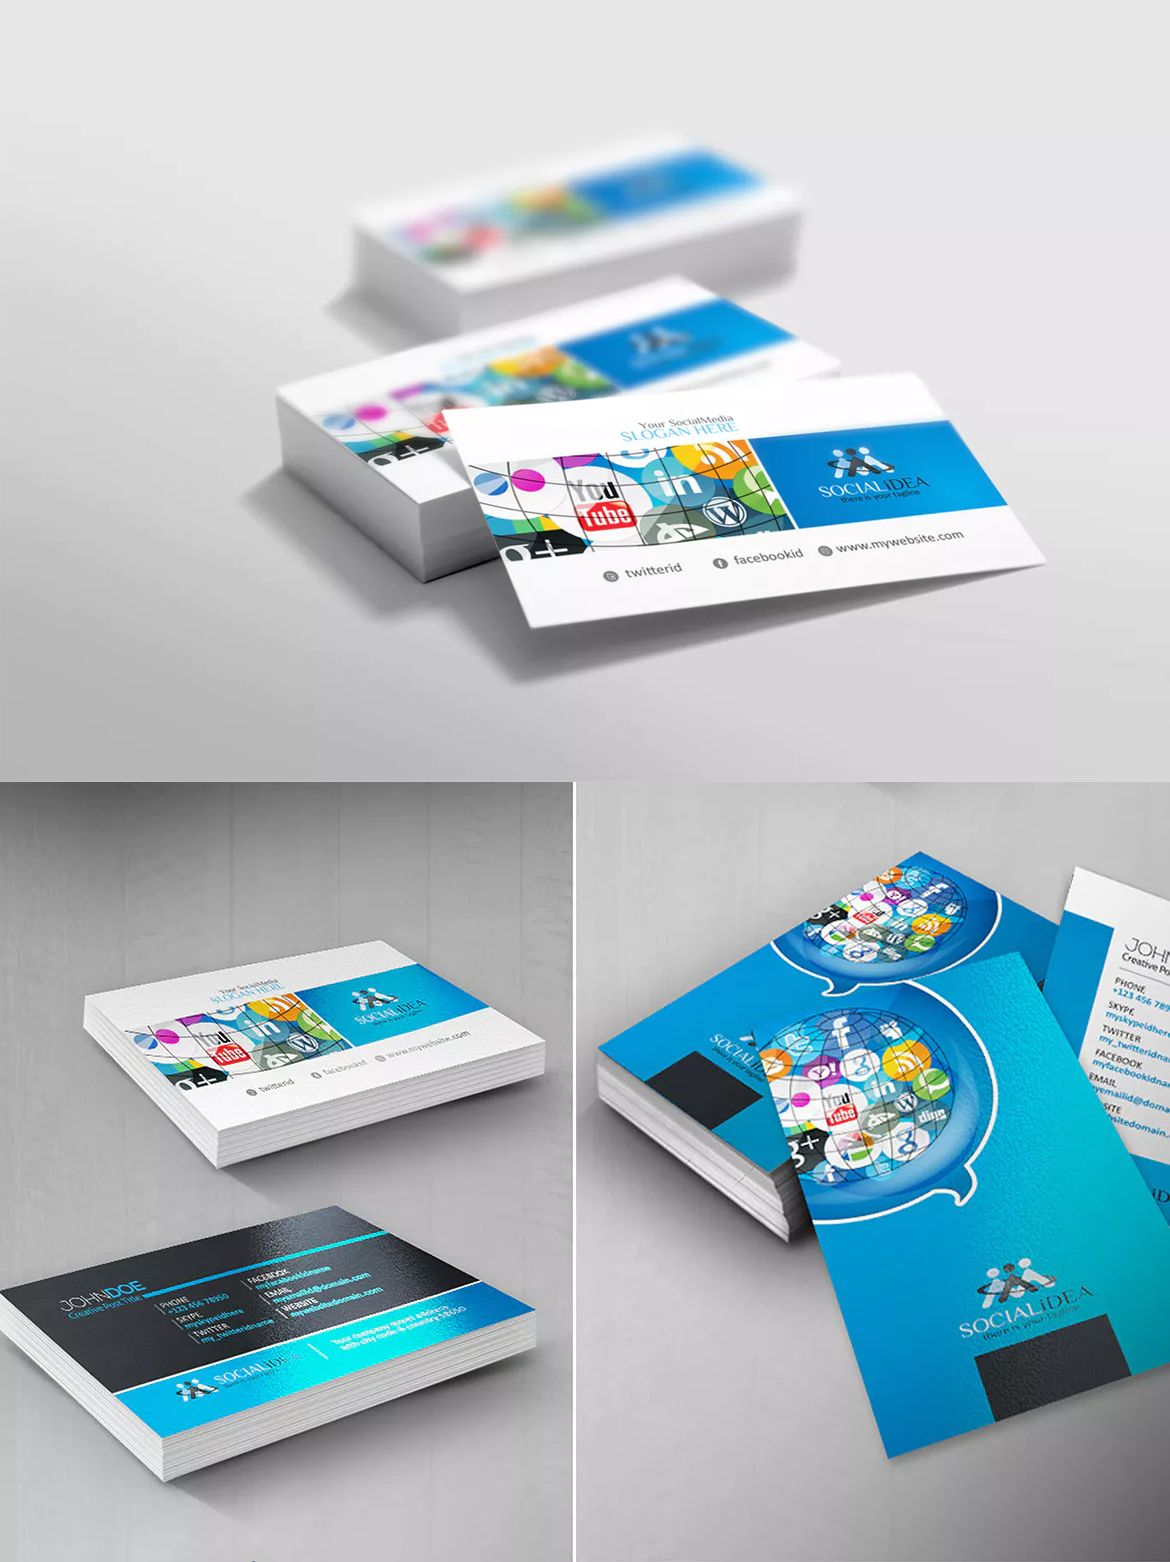 Social media business card template eps business card templates social media business card template eps flashek Gallery